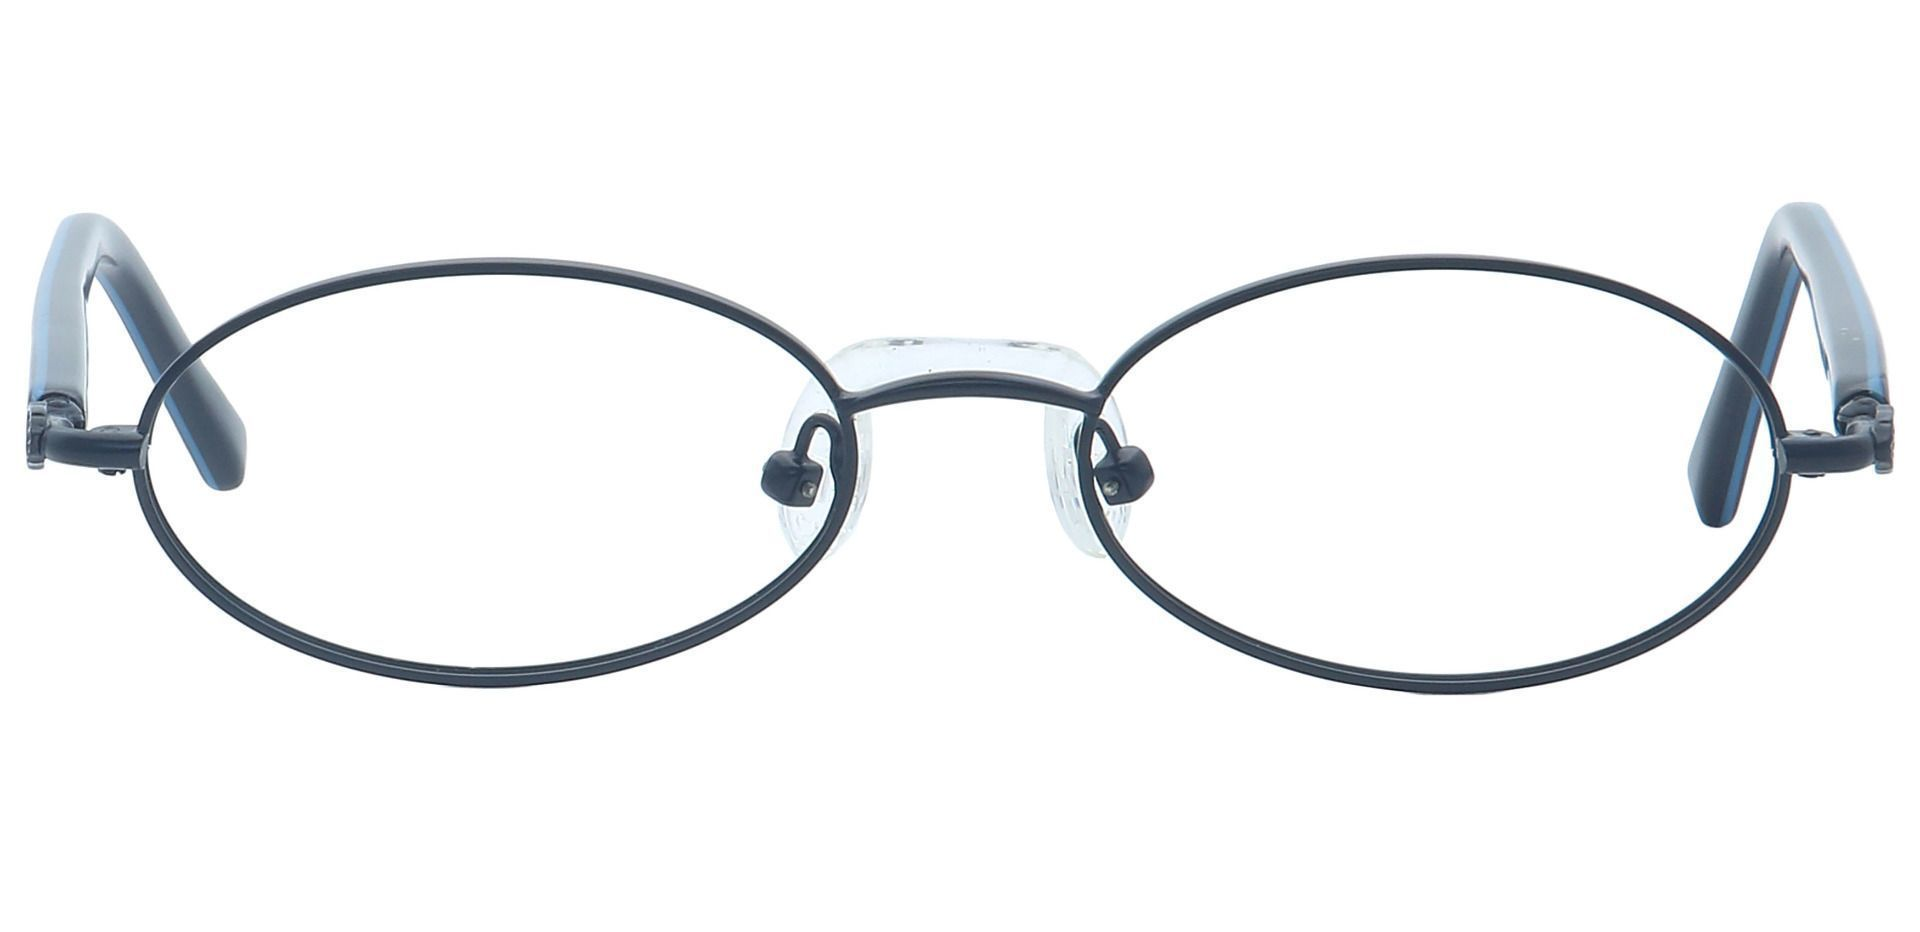 Rory Oval Eyeglasses Frame - Black